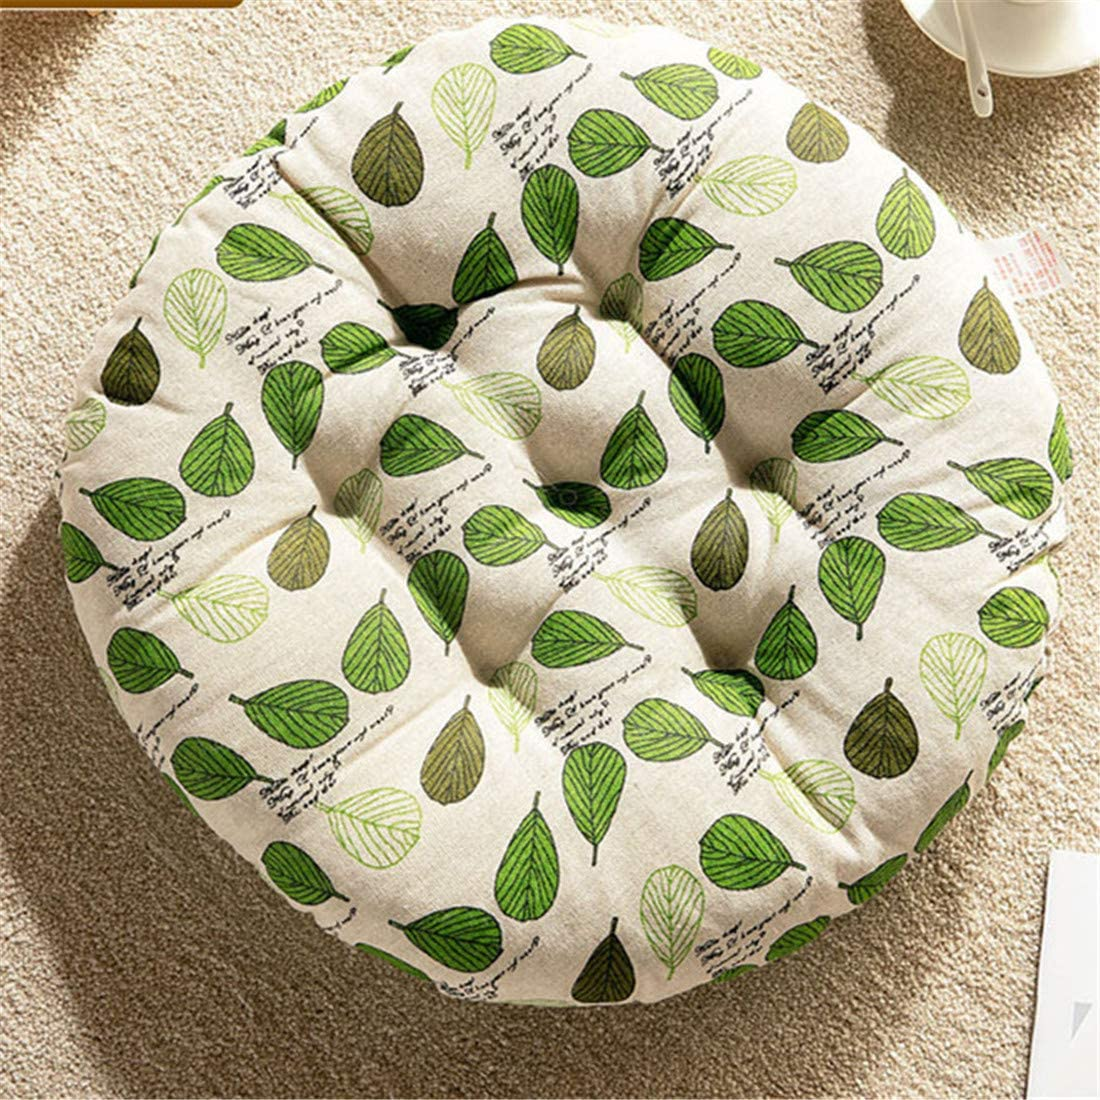 Premium Padded Chair Cushions Quilted Seat Pads Sofa for Indoor and Outdoor Use Pressure Relief Cushion Great As Office Thicker Chickwin Cushion Chair 40x40cm,Arrow